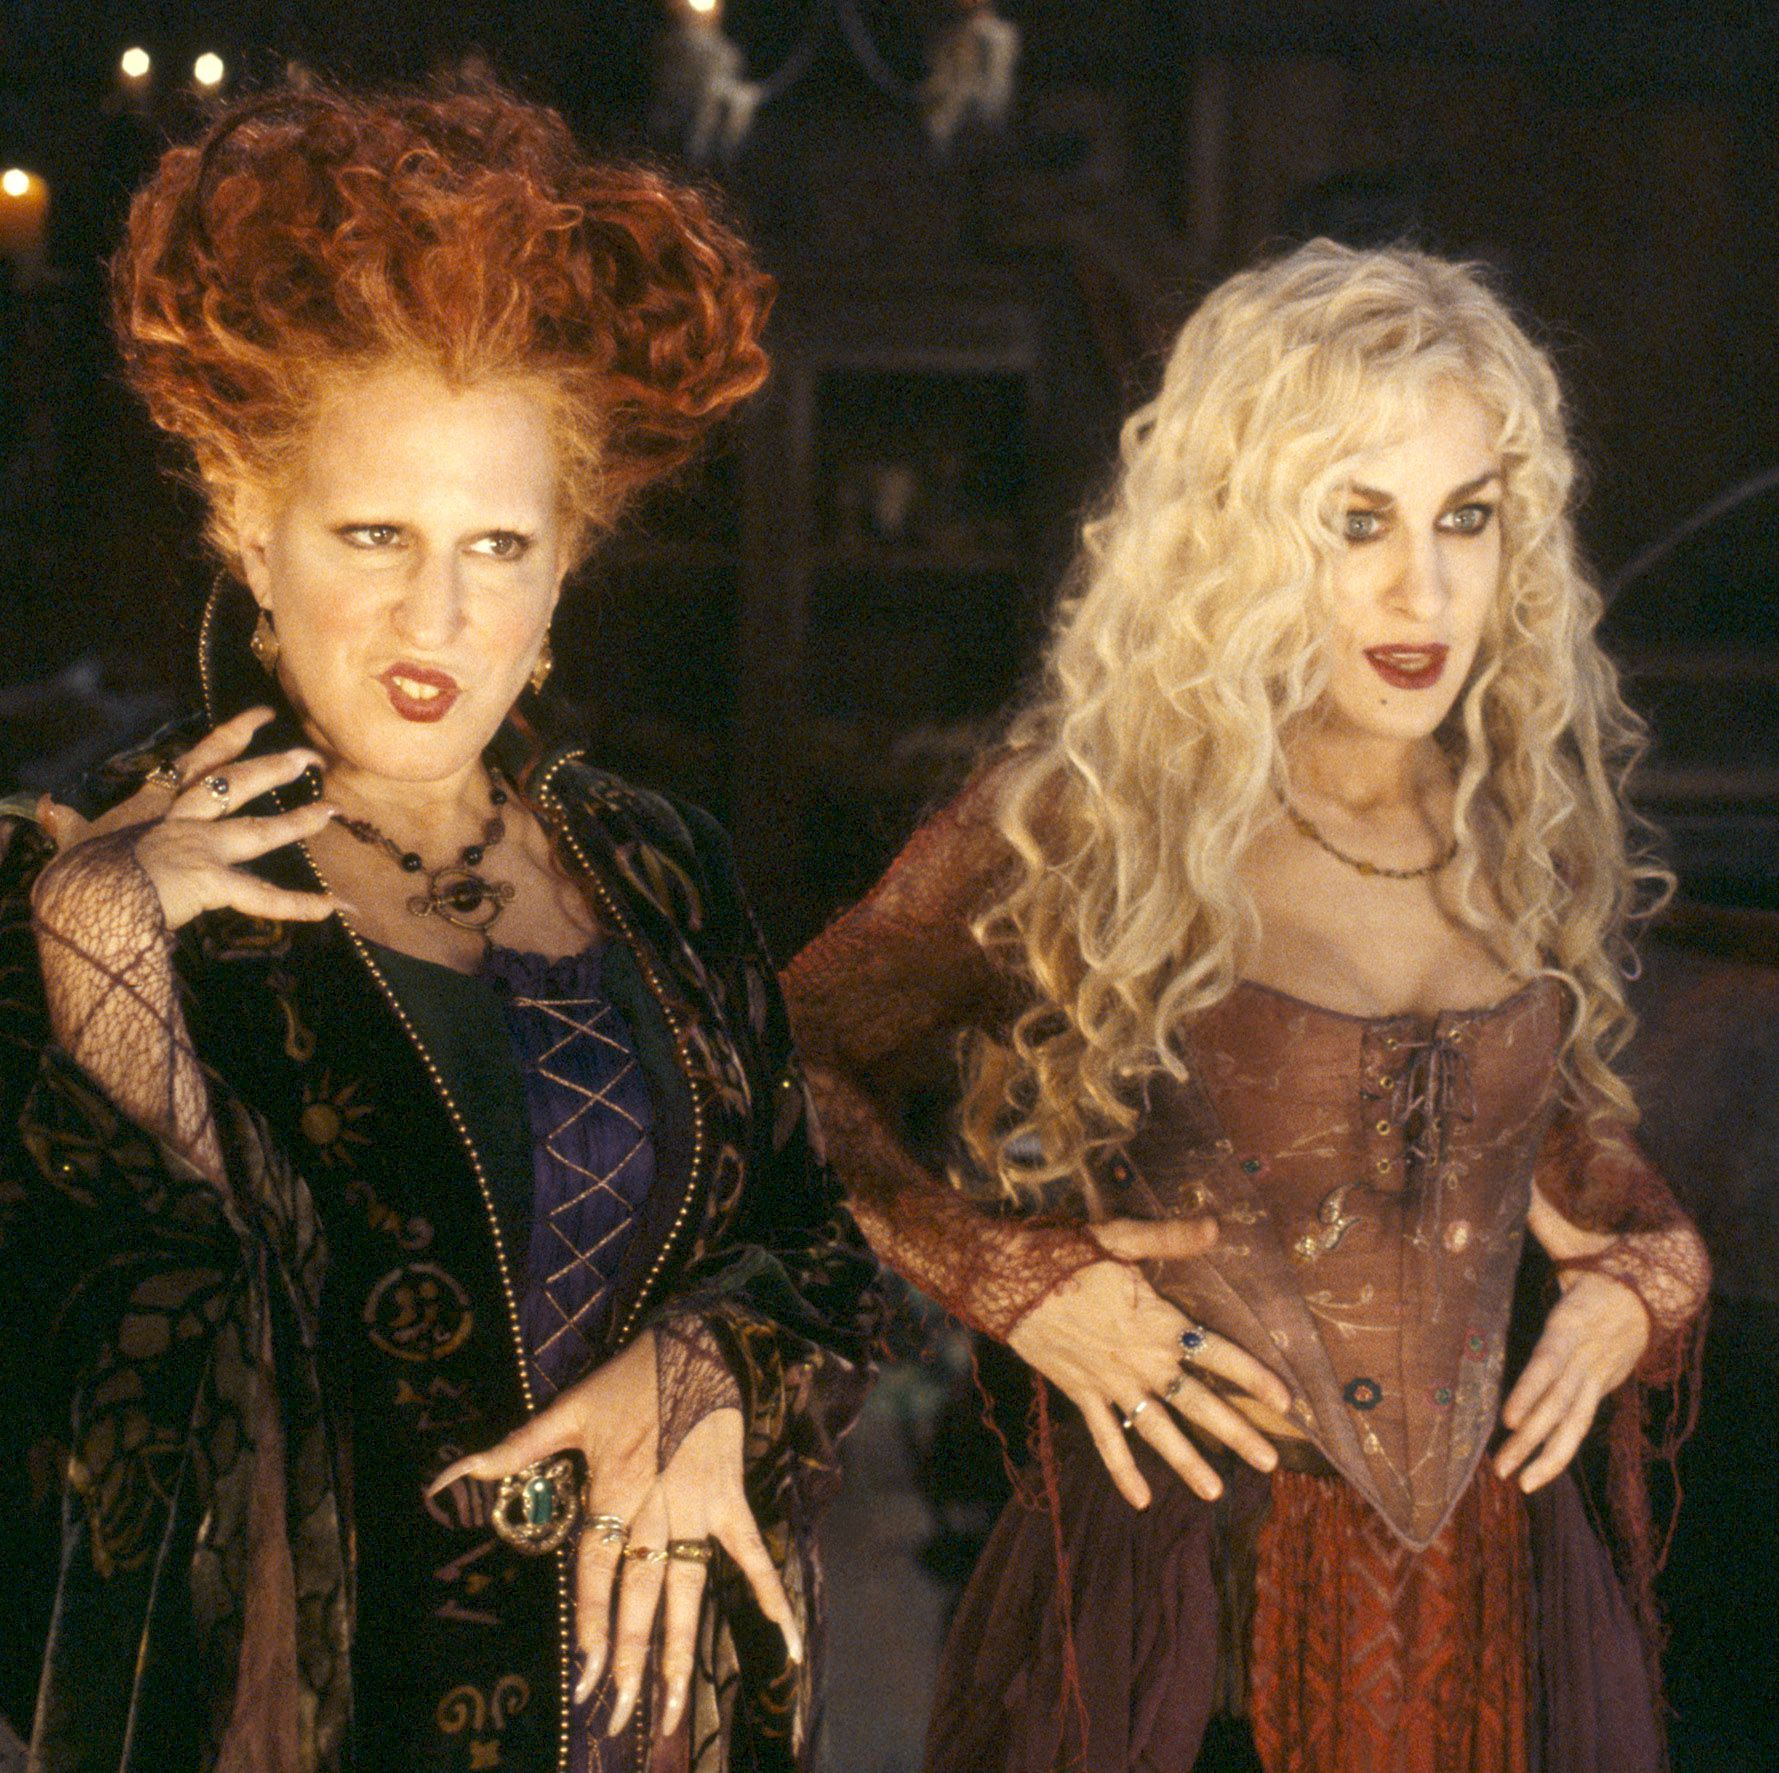 Here's Who Should Be Cast in a 'Hocus Pocus' Reboot